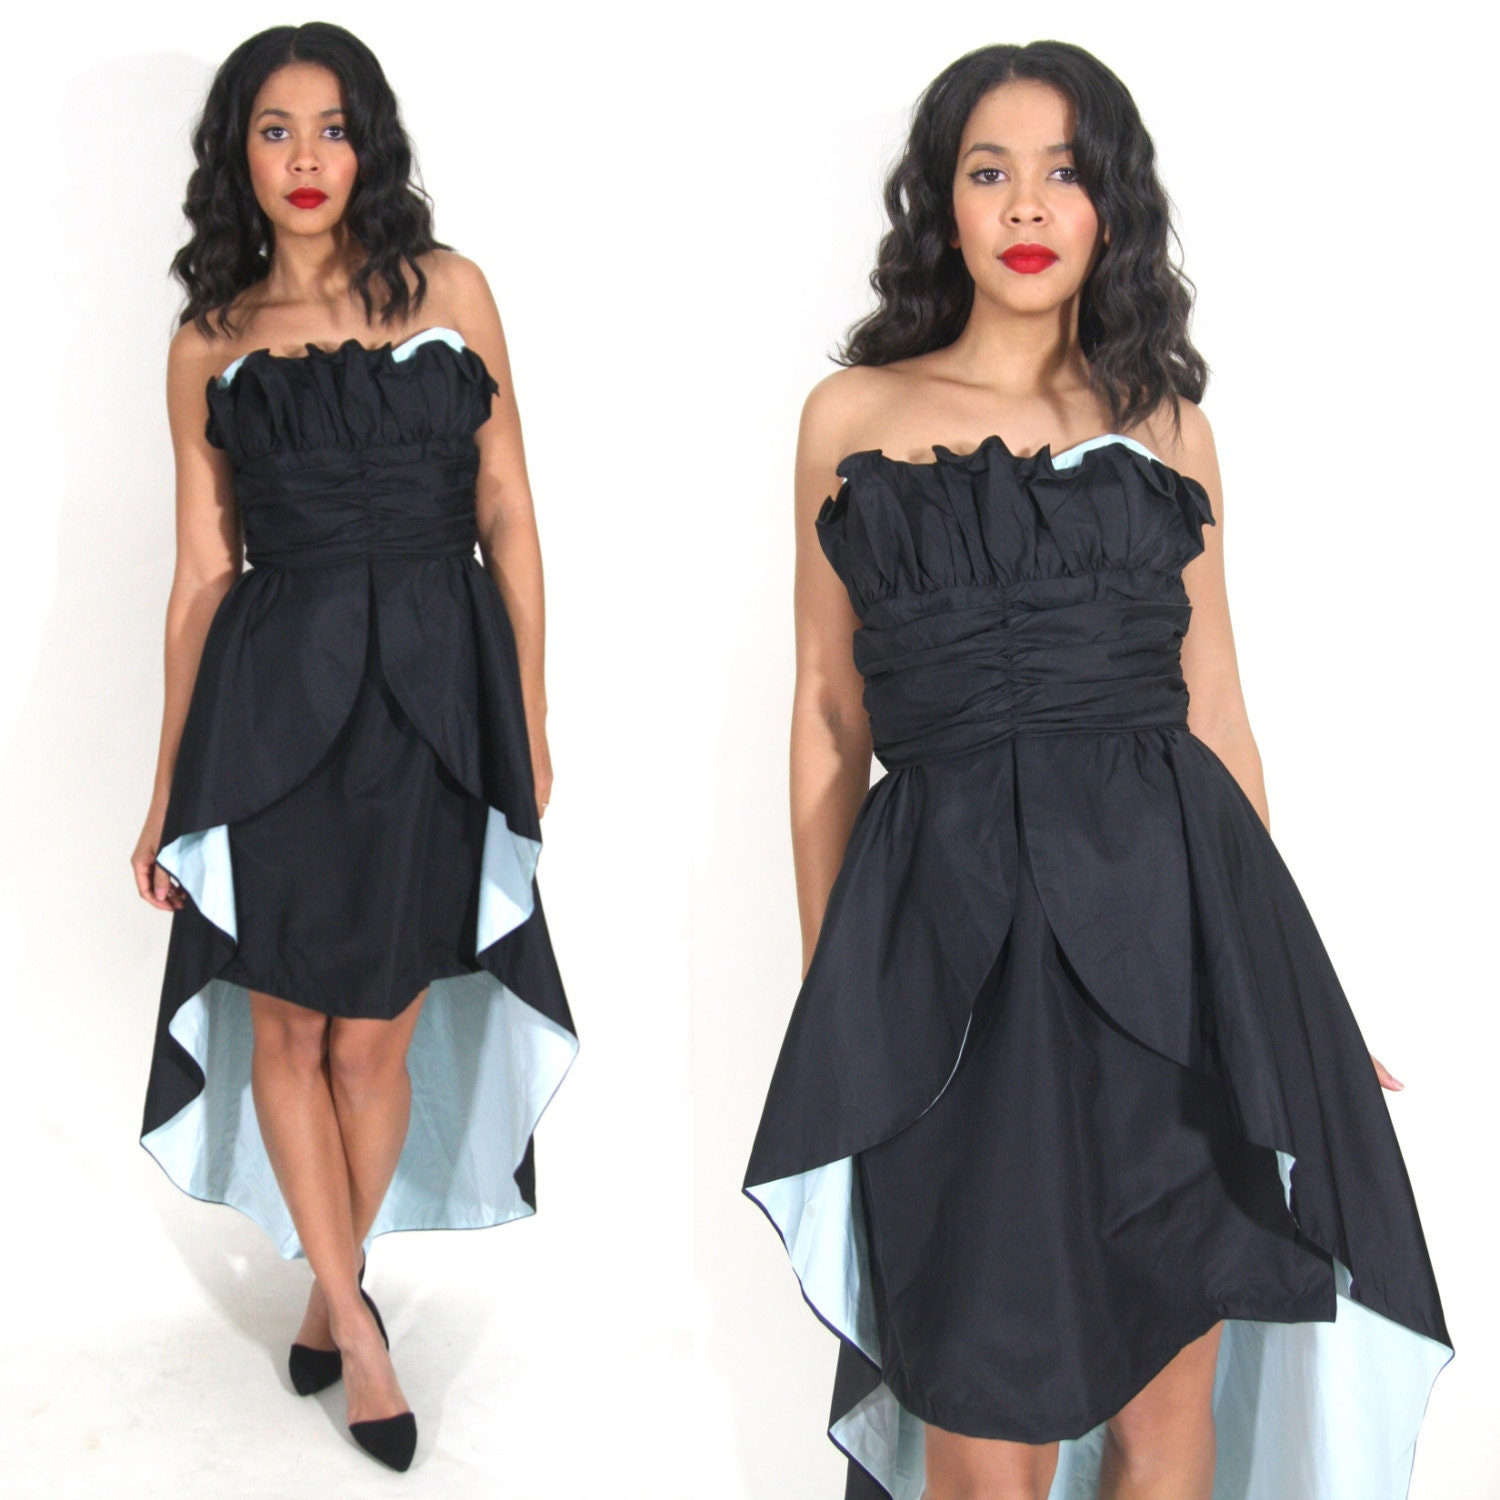 80s Dresses   Casual to Party Dresses Vintage 80S Avant Garde Black Blue Strapless Ruffle Party Dress Train Glam Holiday $20.00 AT vintagedancer.com